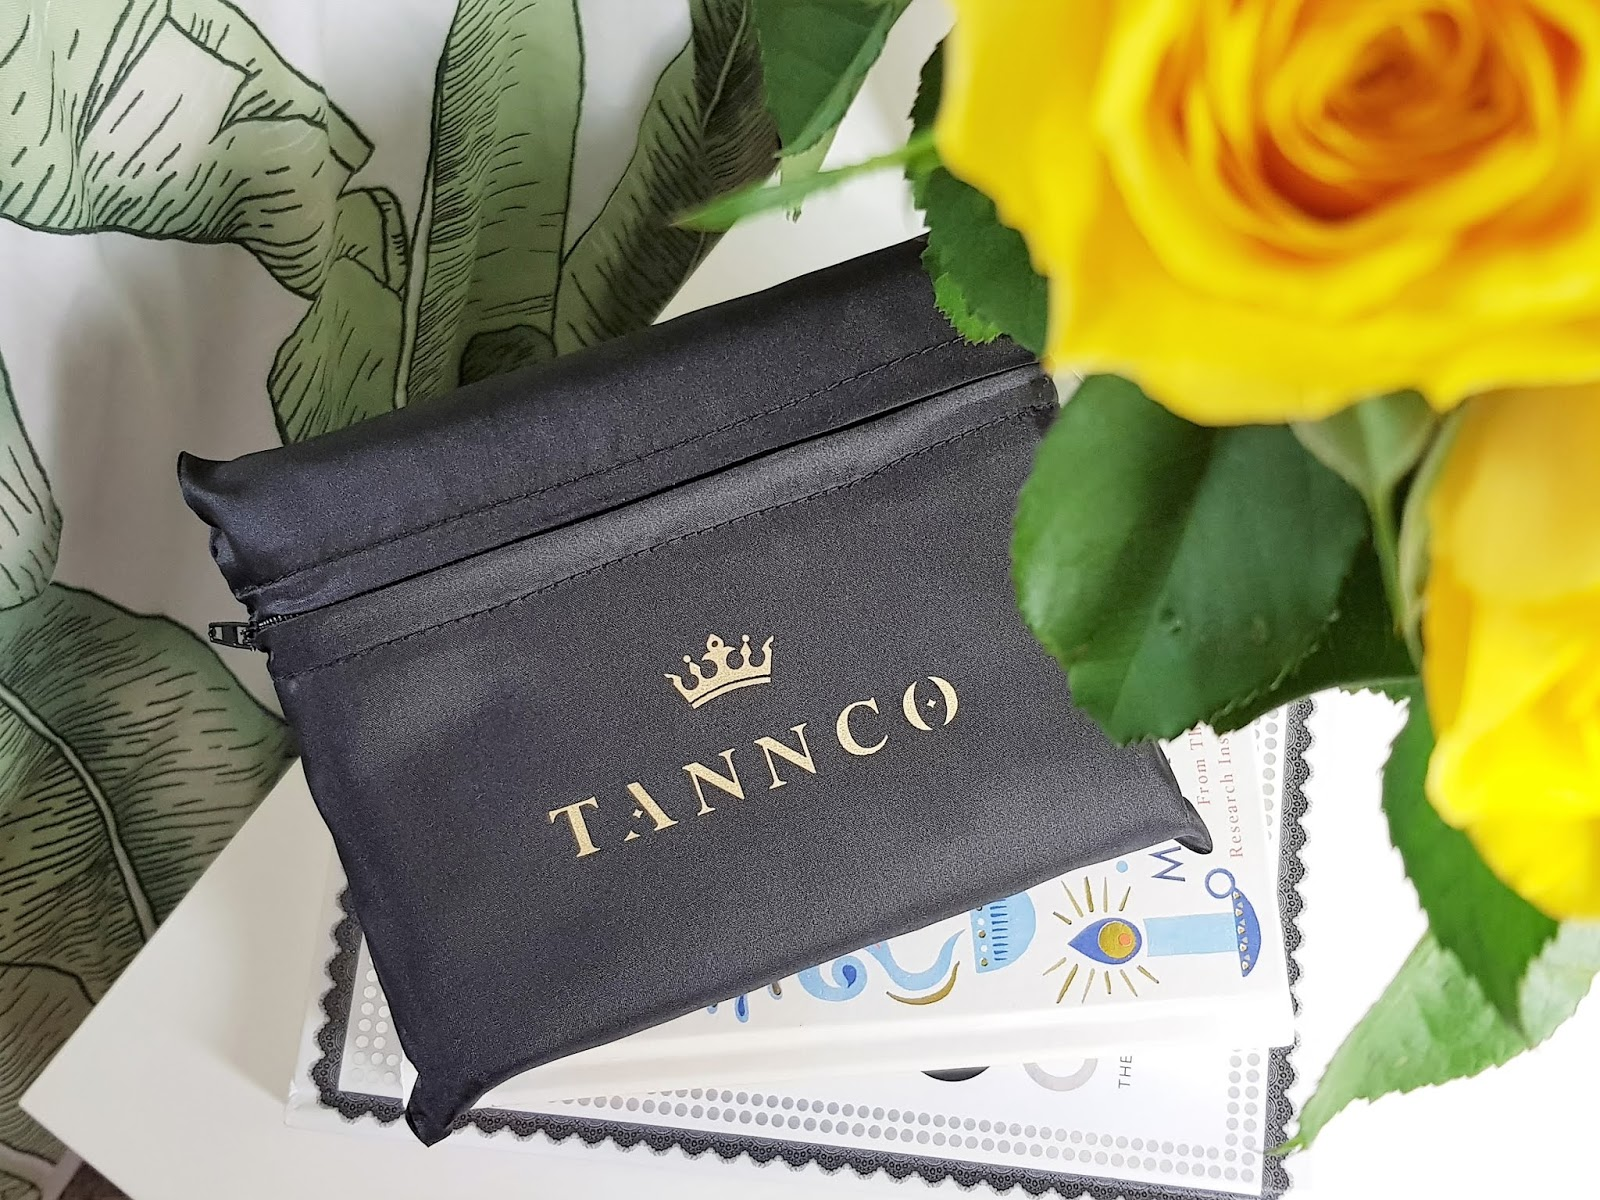 Tannco Black Tan Protector Bed Sheet